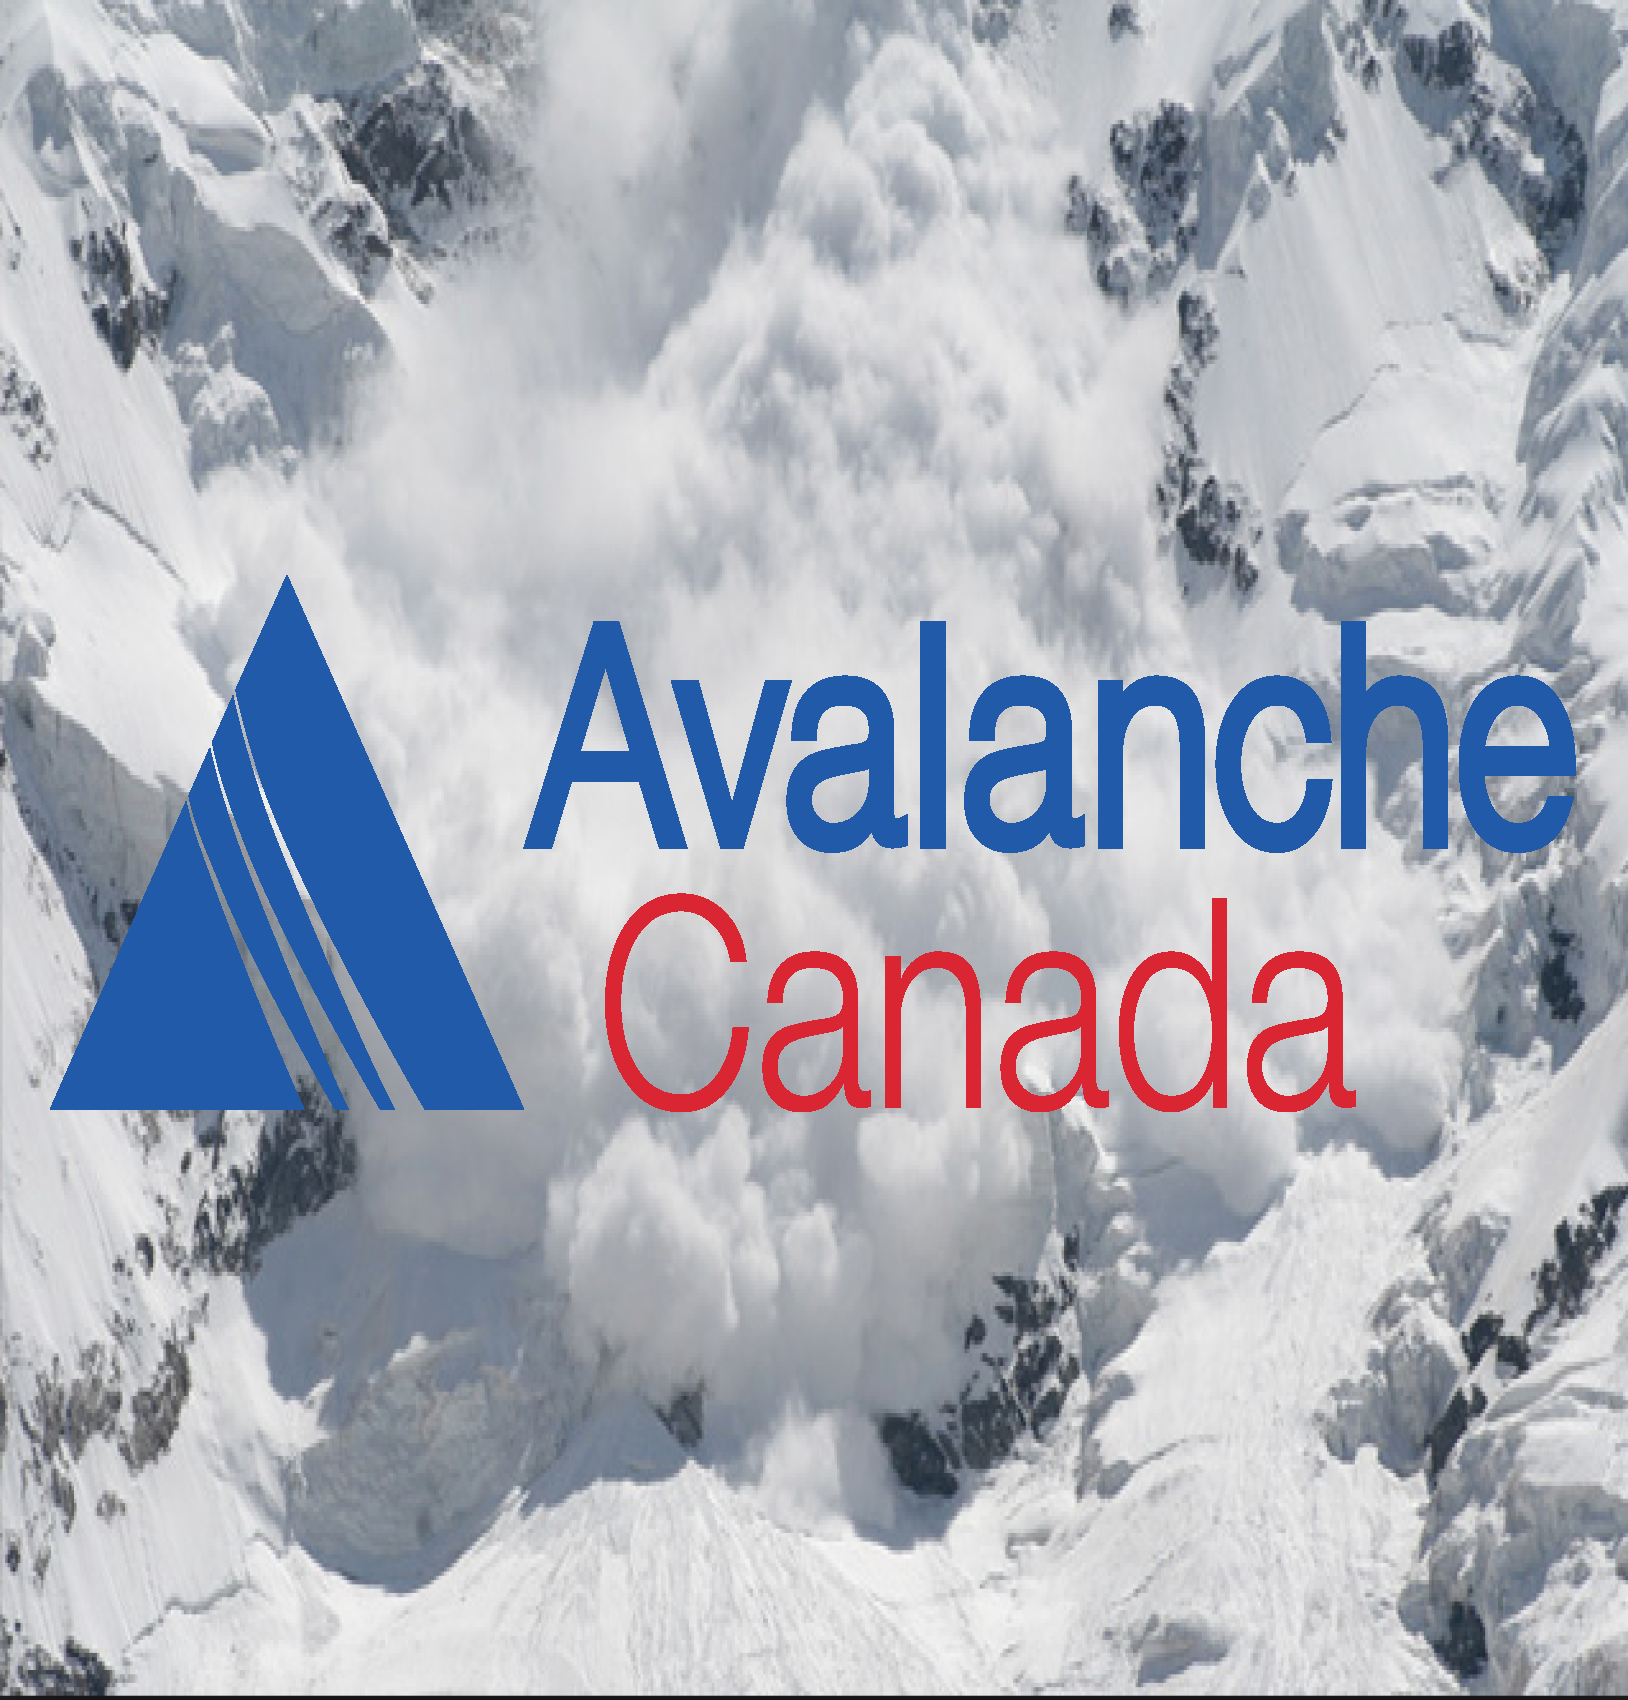 Covid, funding, and forecasting concerns for Avalanche Canada